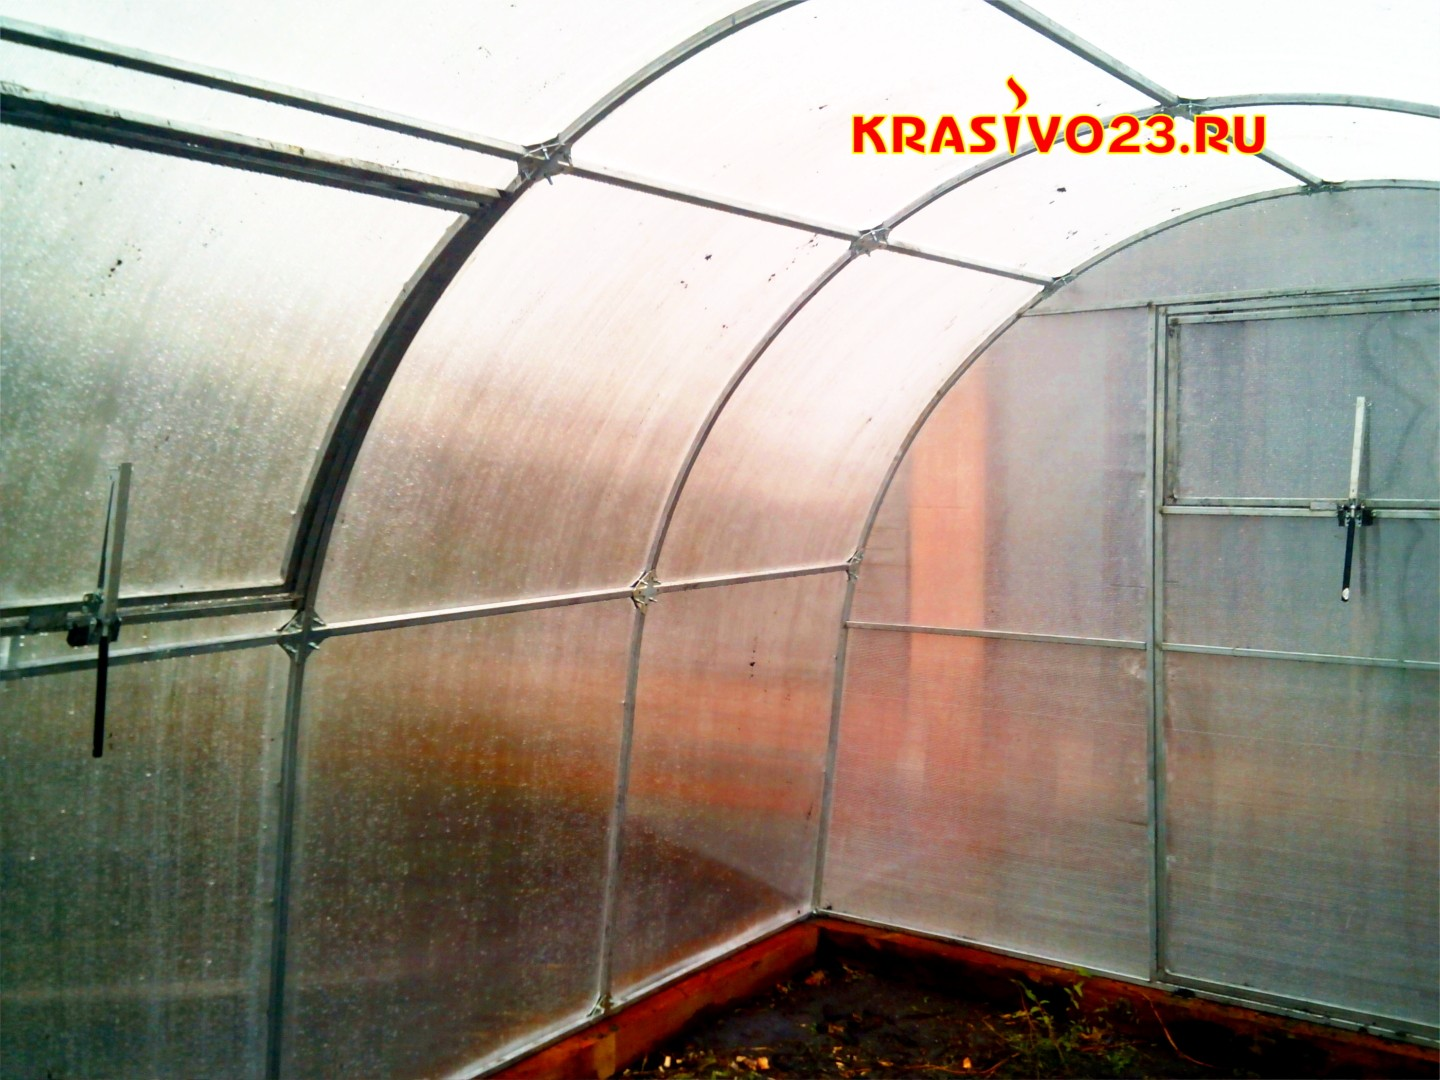 greenhouse-hothouse-glasshouse-installation-krasnodar-krasivo23.ru-002